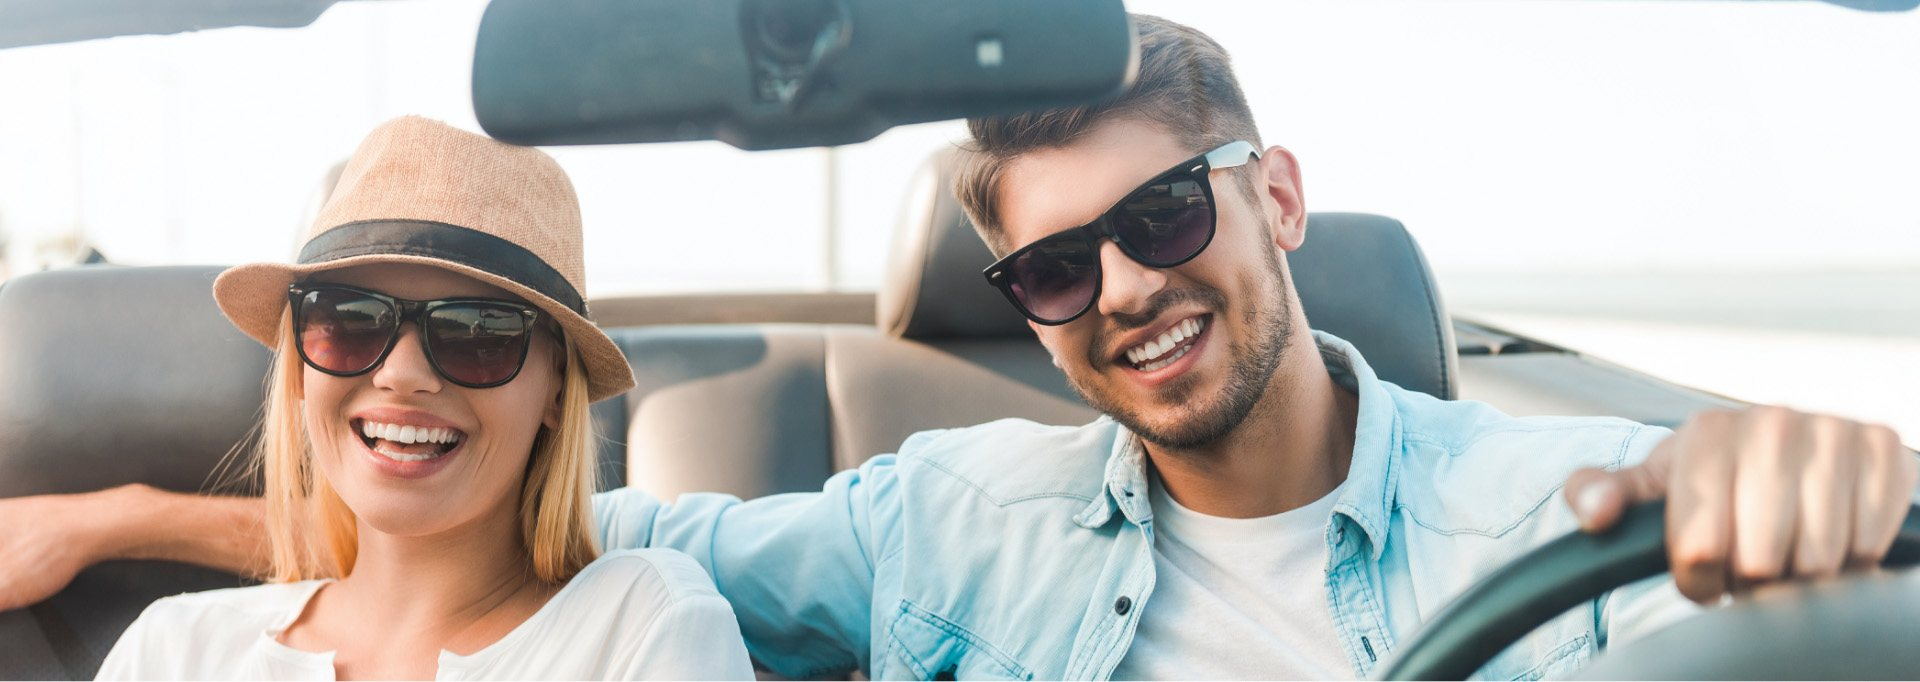 Smiling couple wearing sunglasses driving in a vehicle